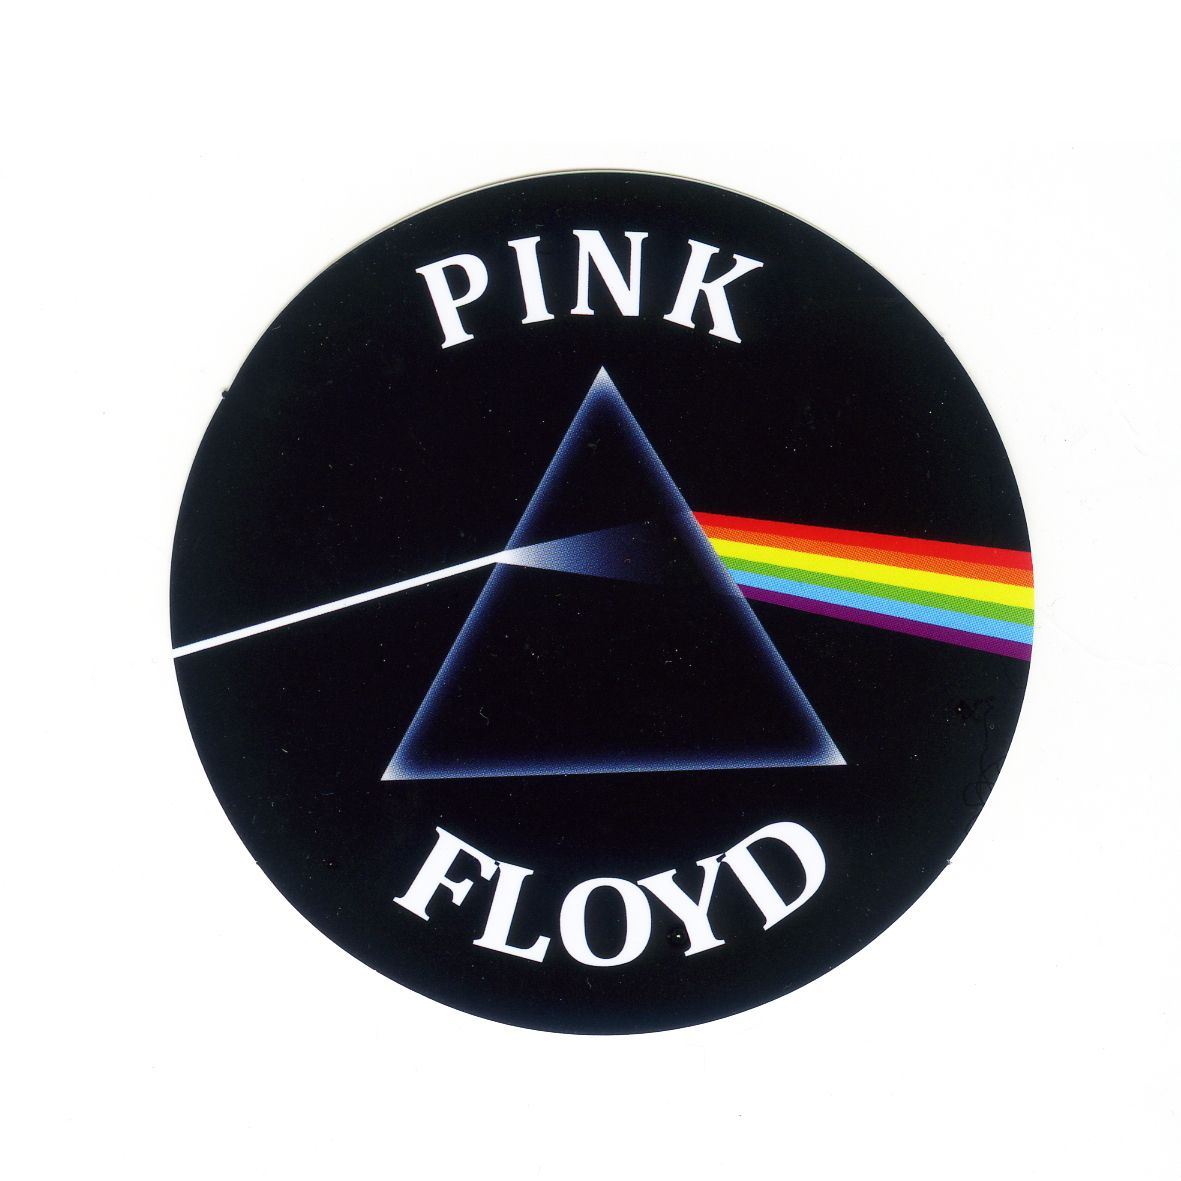 1608 Pink Floyd Dark Side Of The Moon Height 8 Cm Decal Sticker